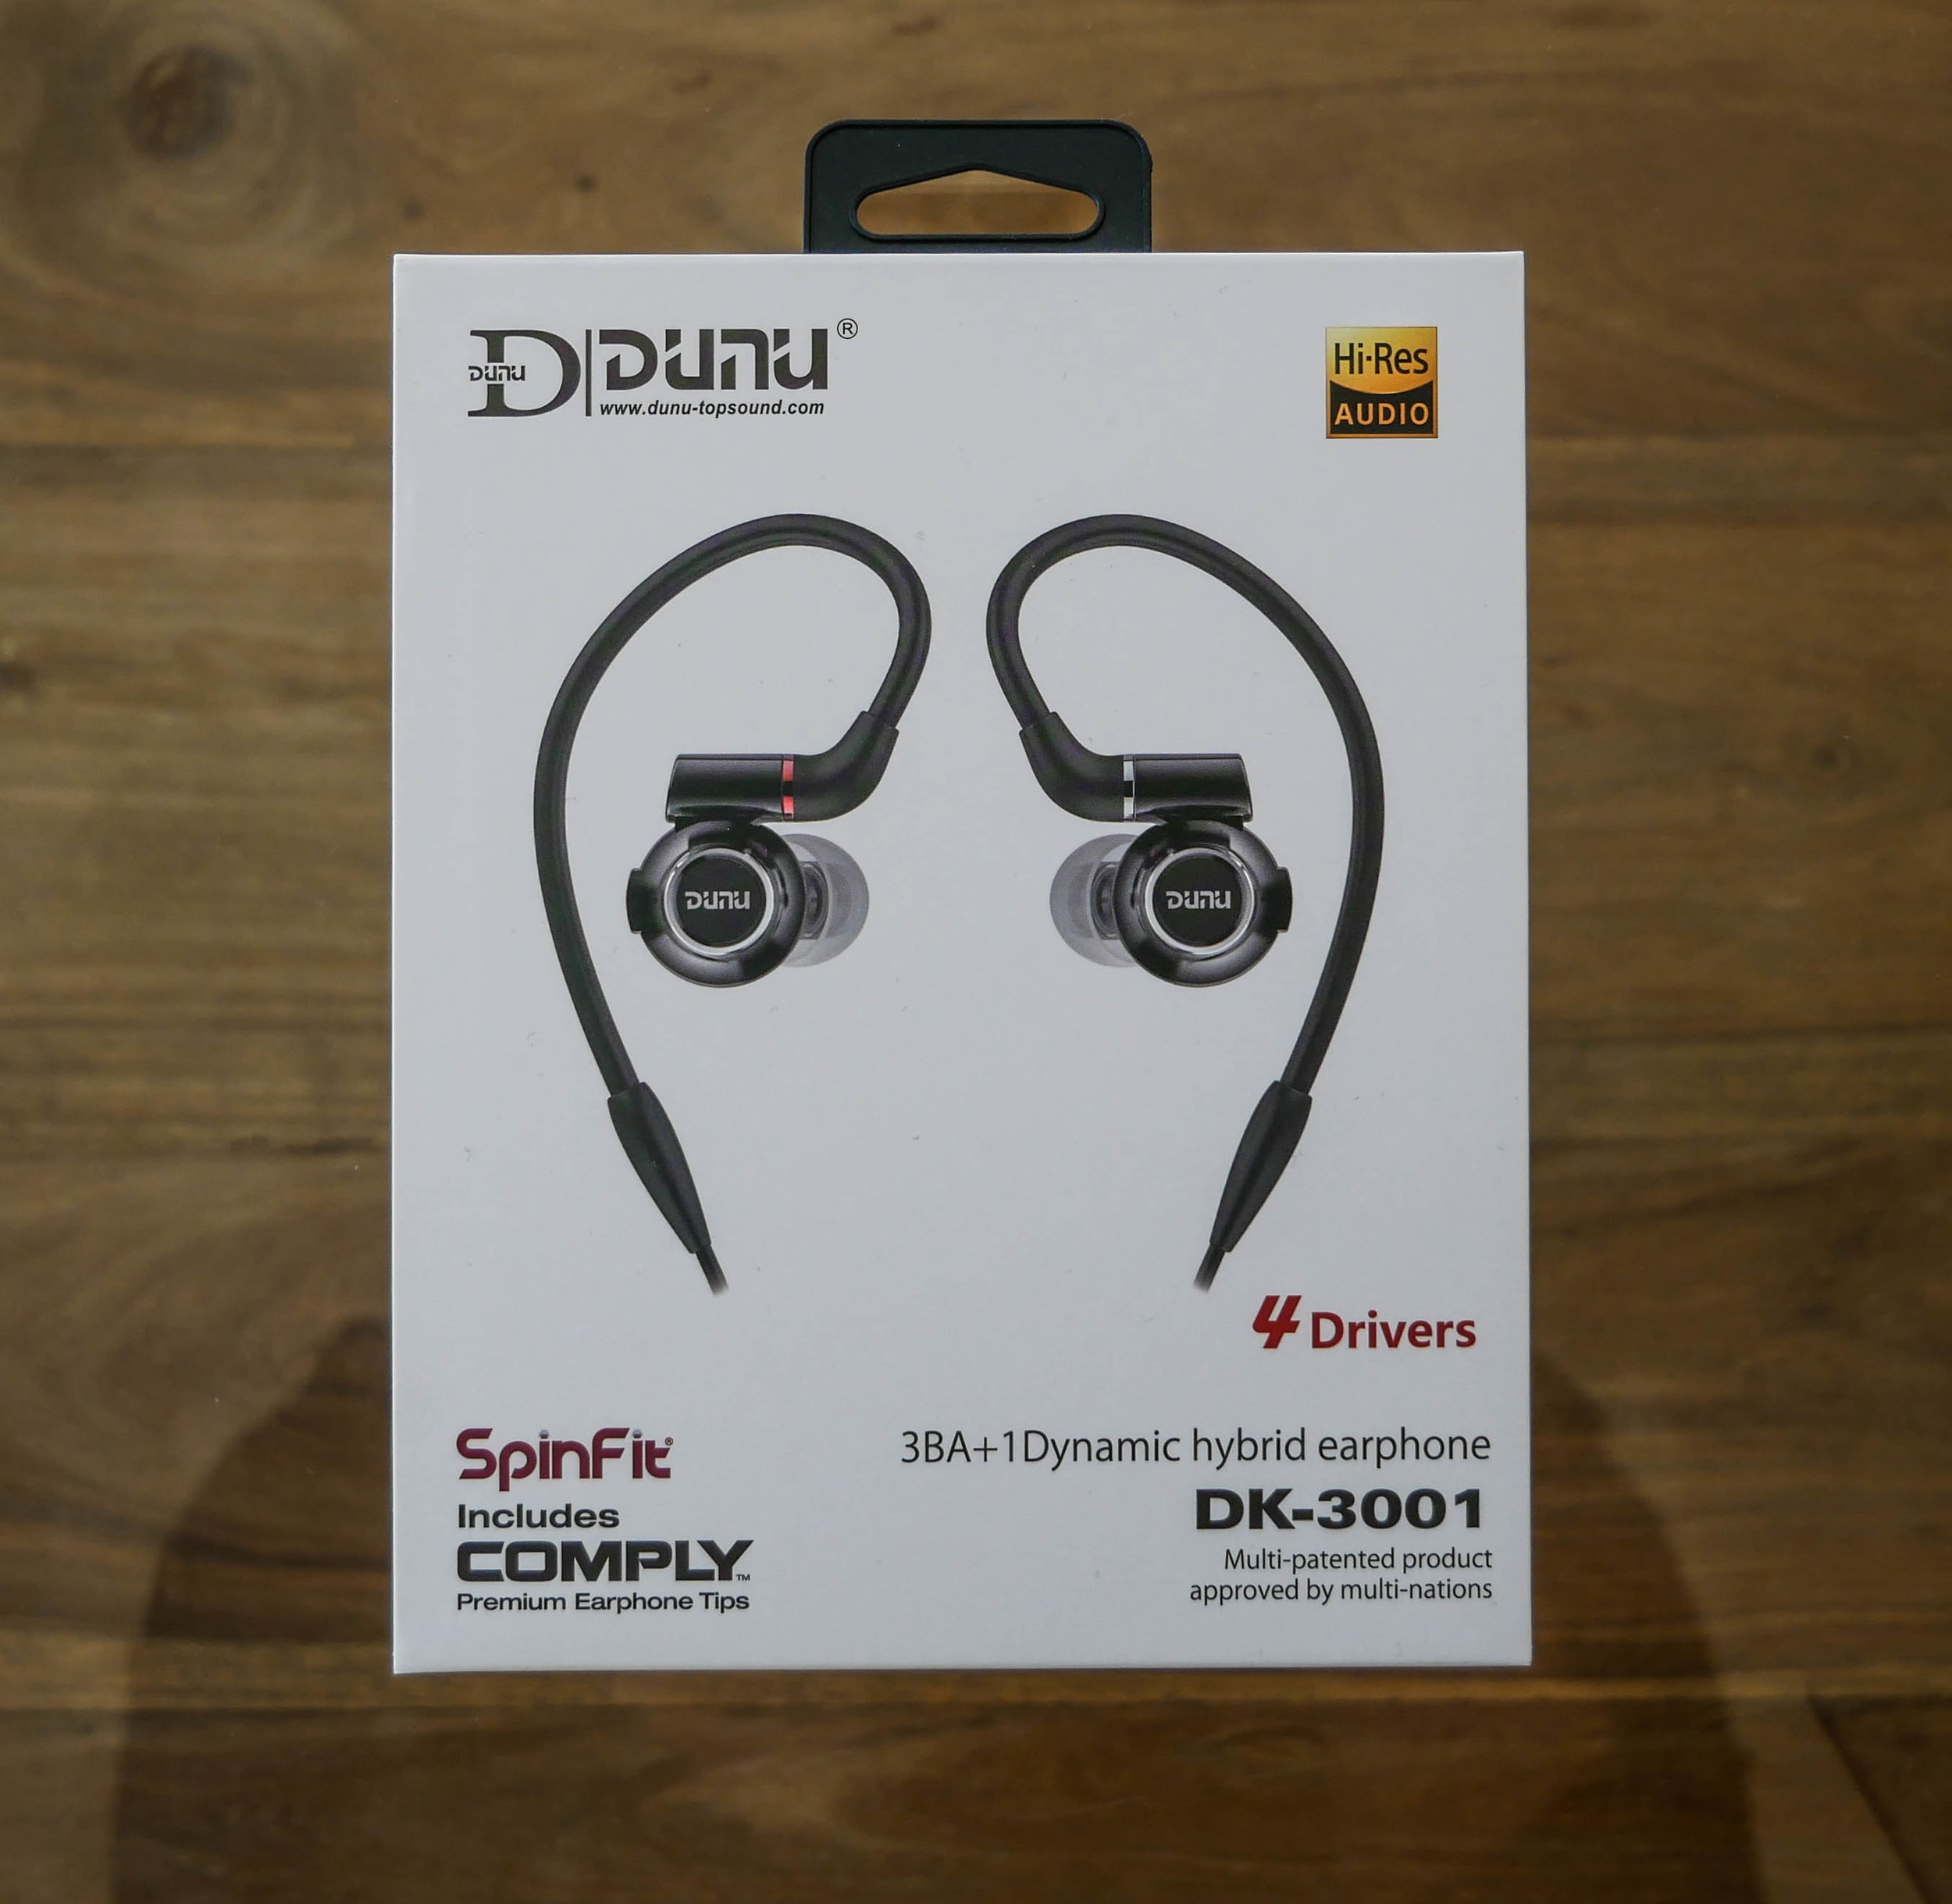 Dunu Dk-3001 earphone box and packaging.